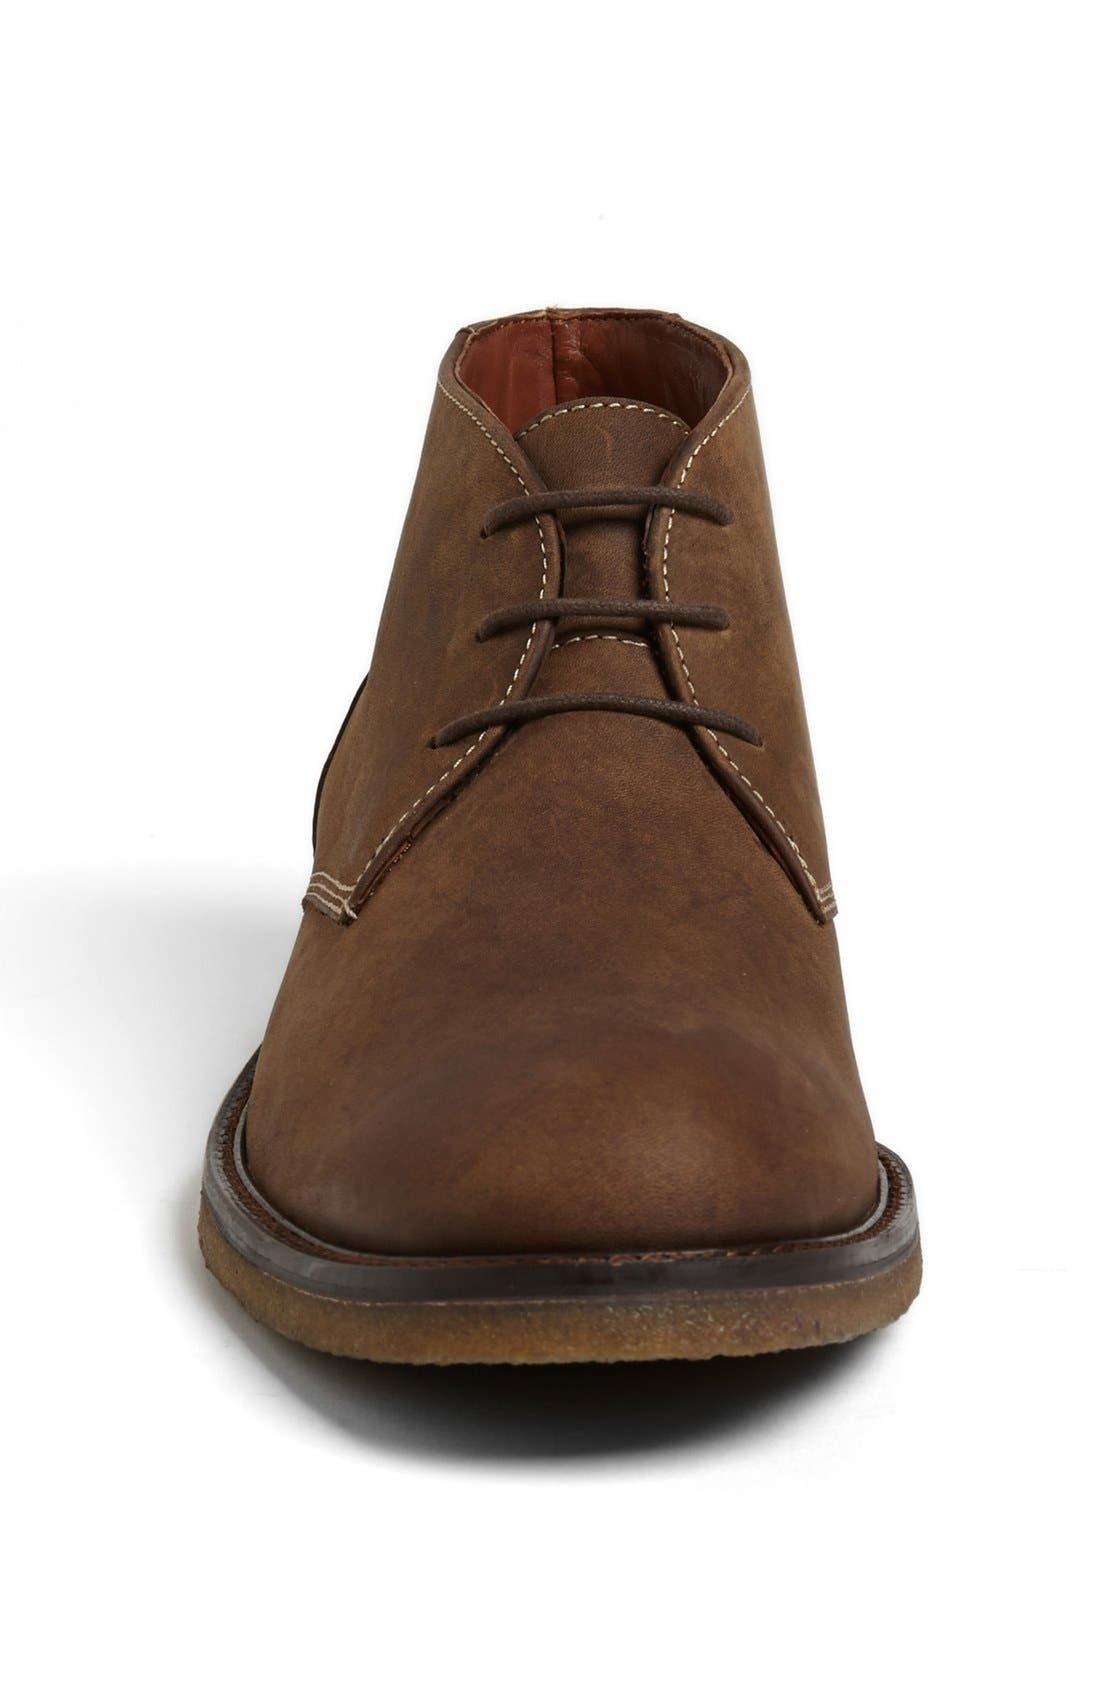 'Copeland' Suede Chukka Boot,                             Alternate thumbnail 33, color,